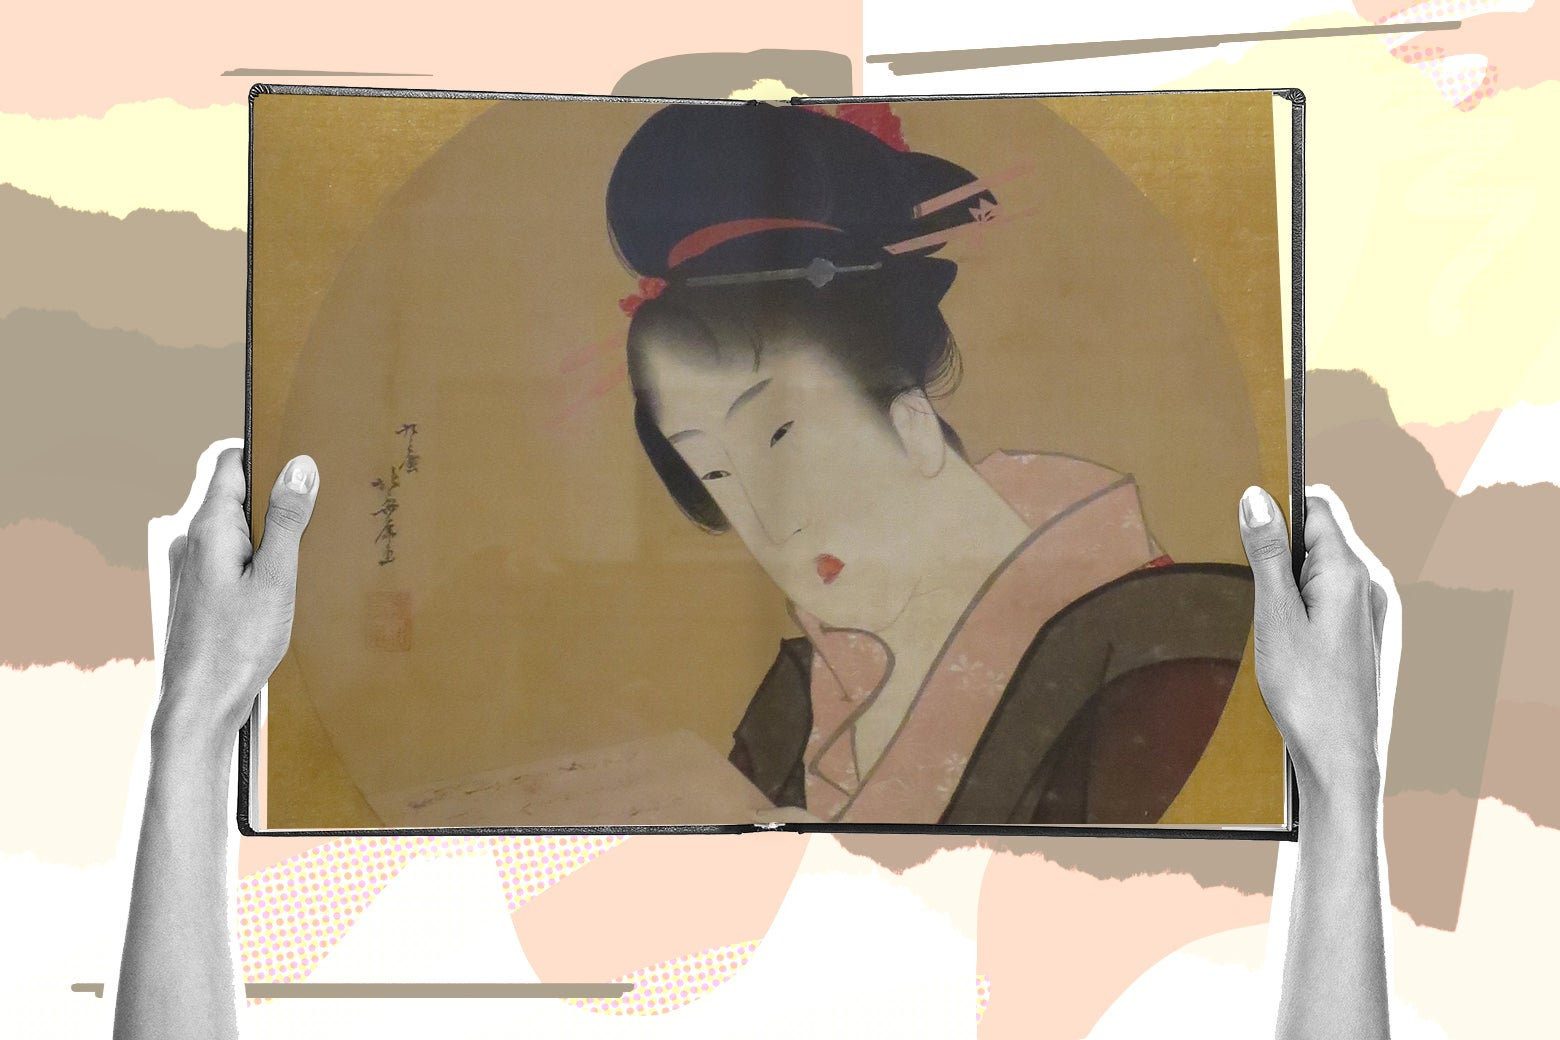 Woman's hands reading a book showing a painting of a woman by Katsushika Hokusai.